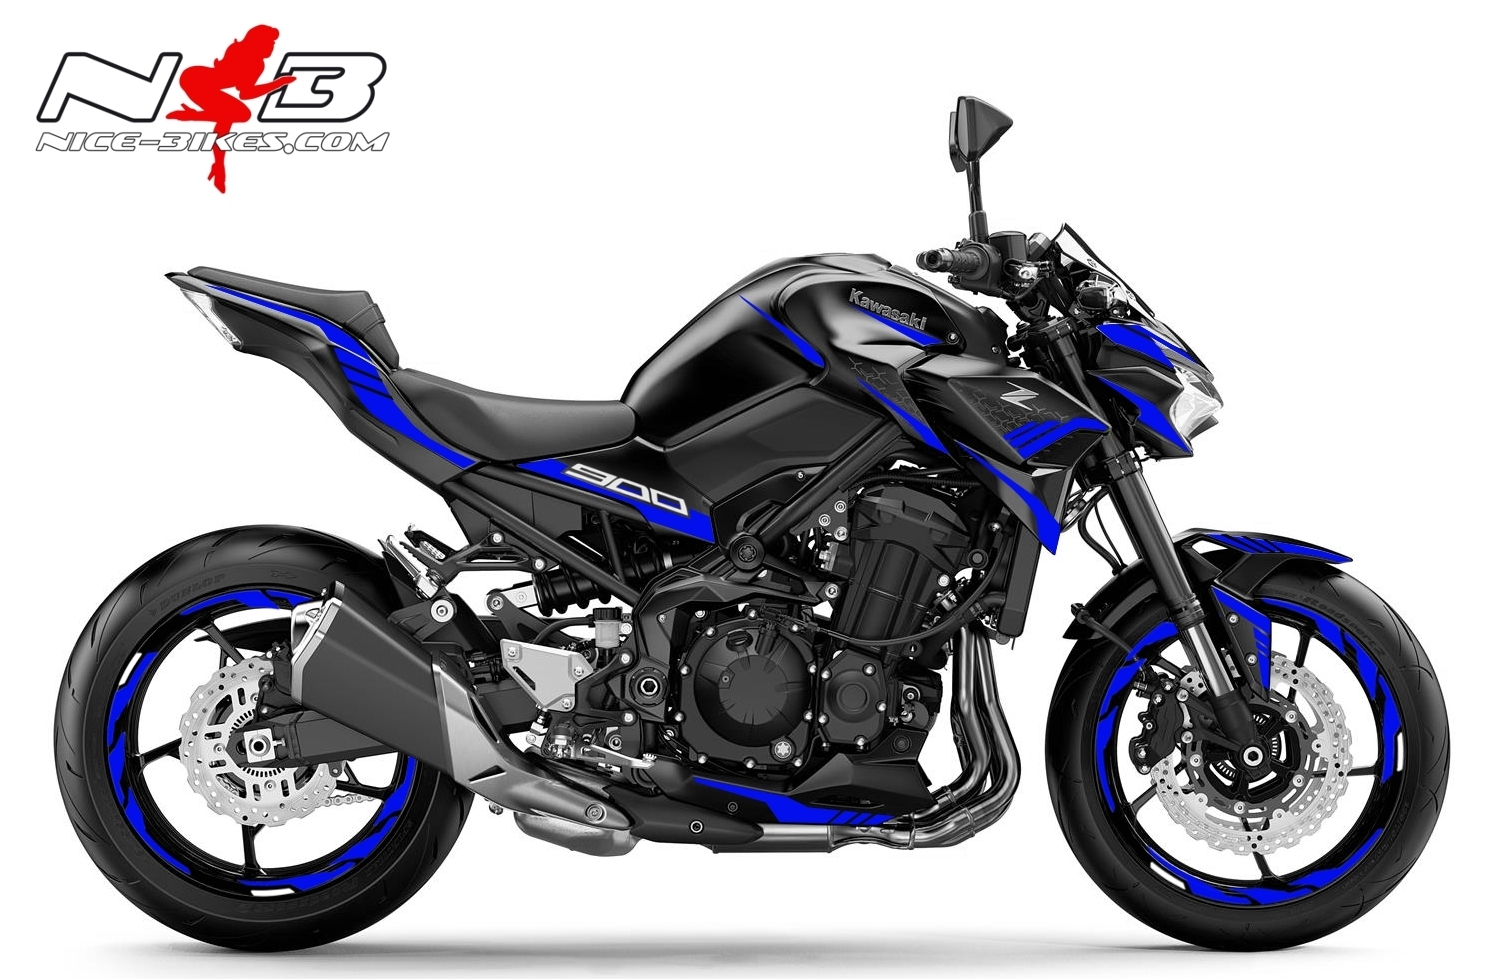 Foliendesign Kawasaki Z900 Bj. 2020 Racing Blue